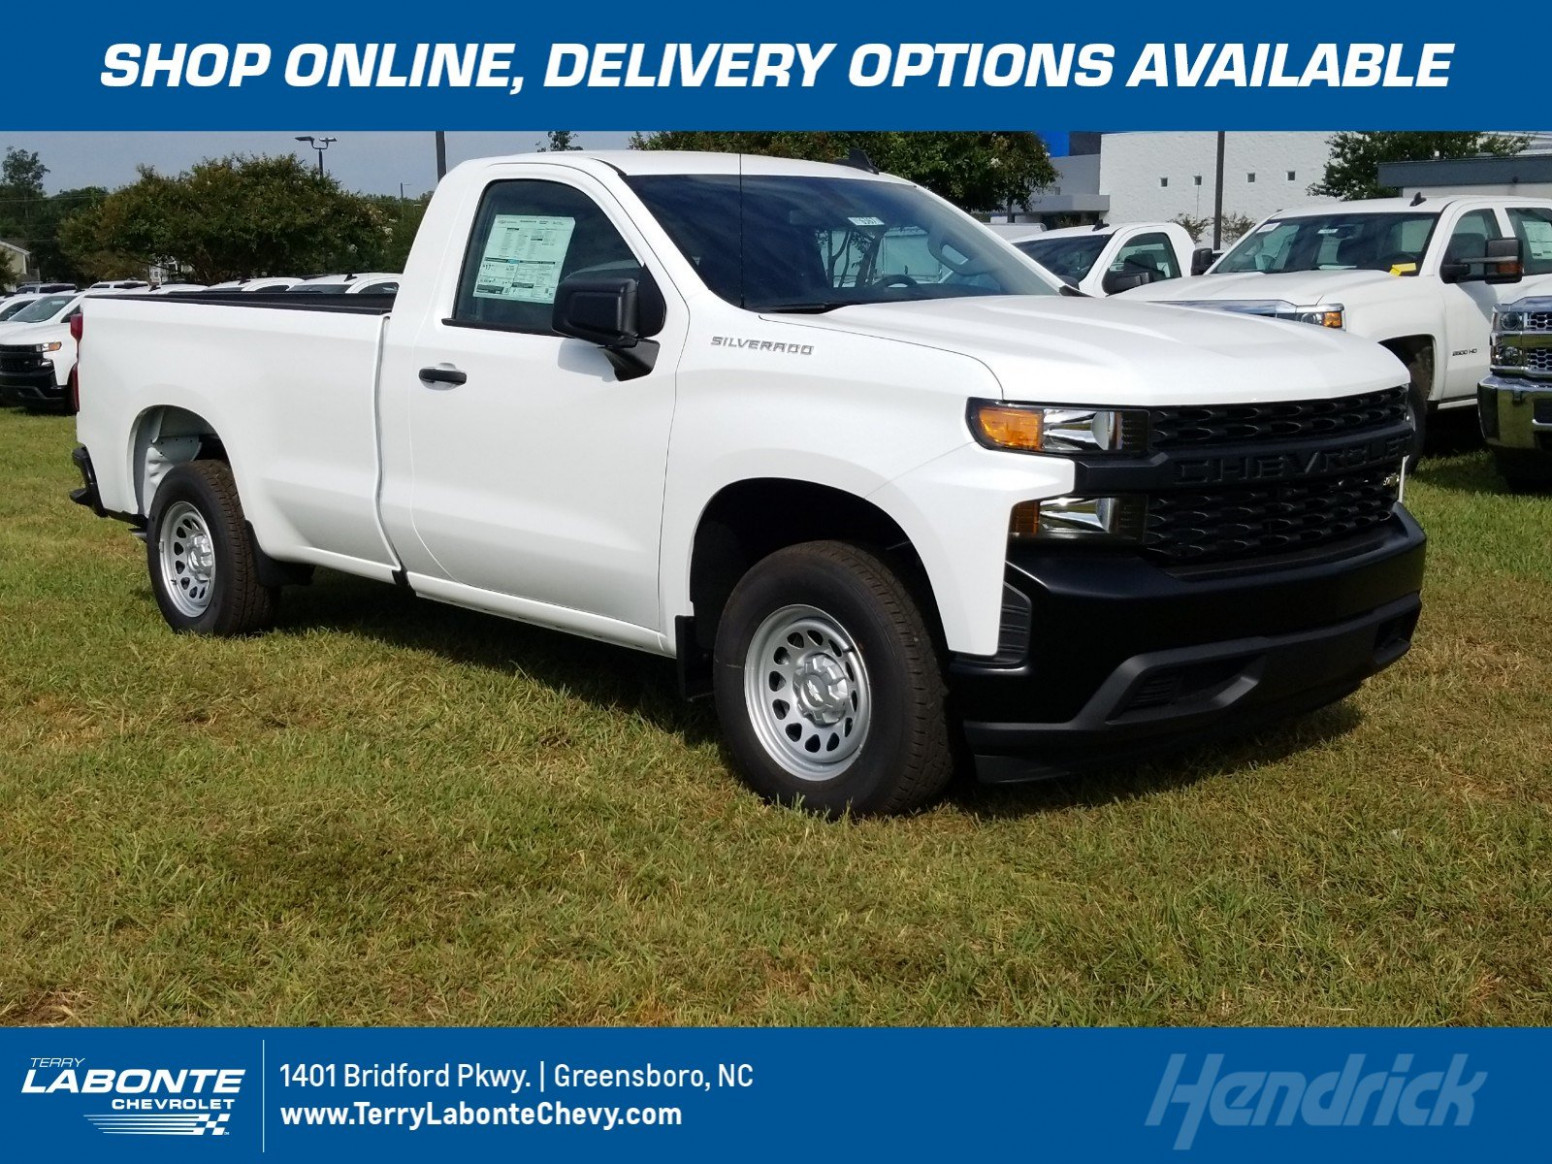 New 11 Chevrolet Silverado 11 Work Truck RWD Pickup